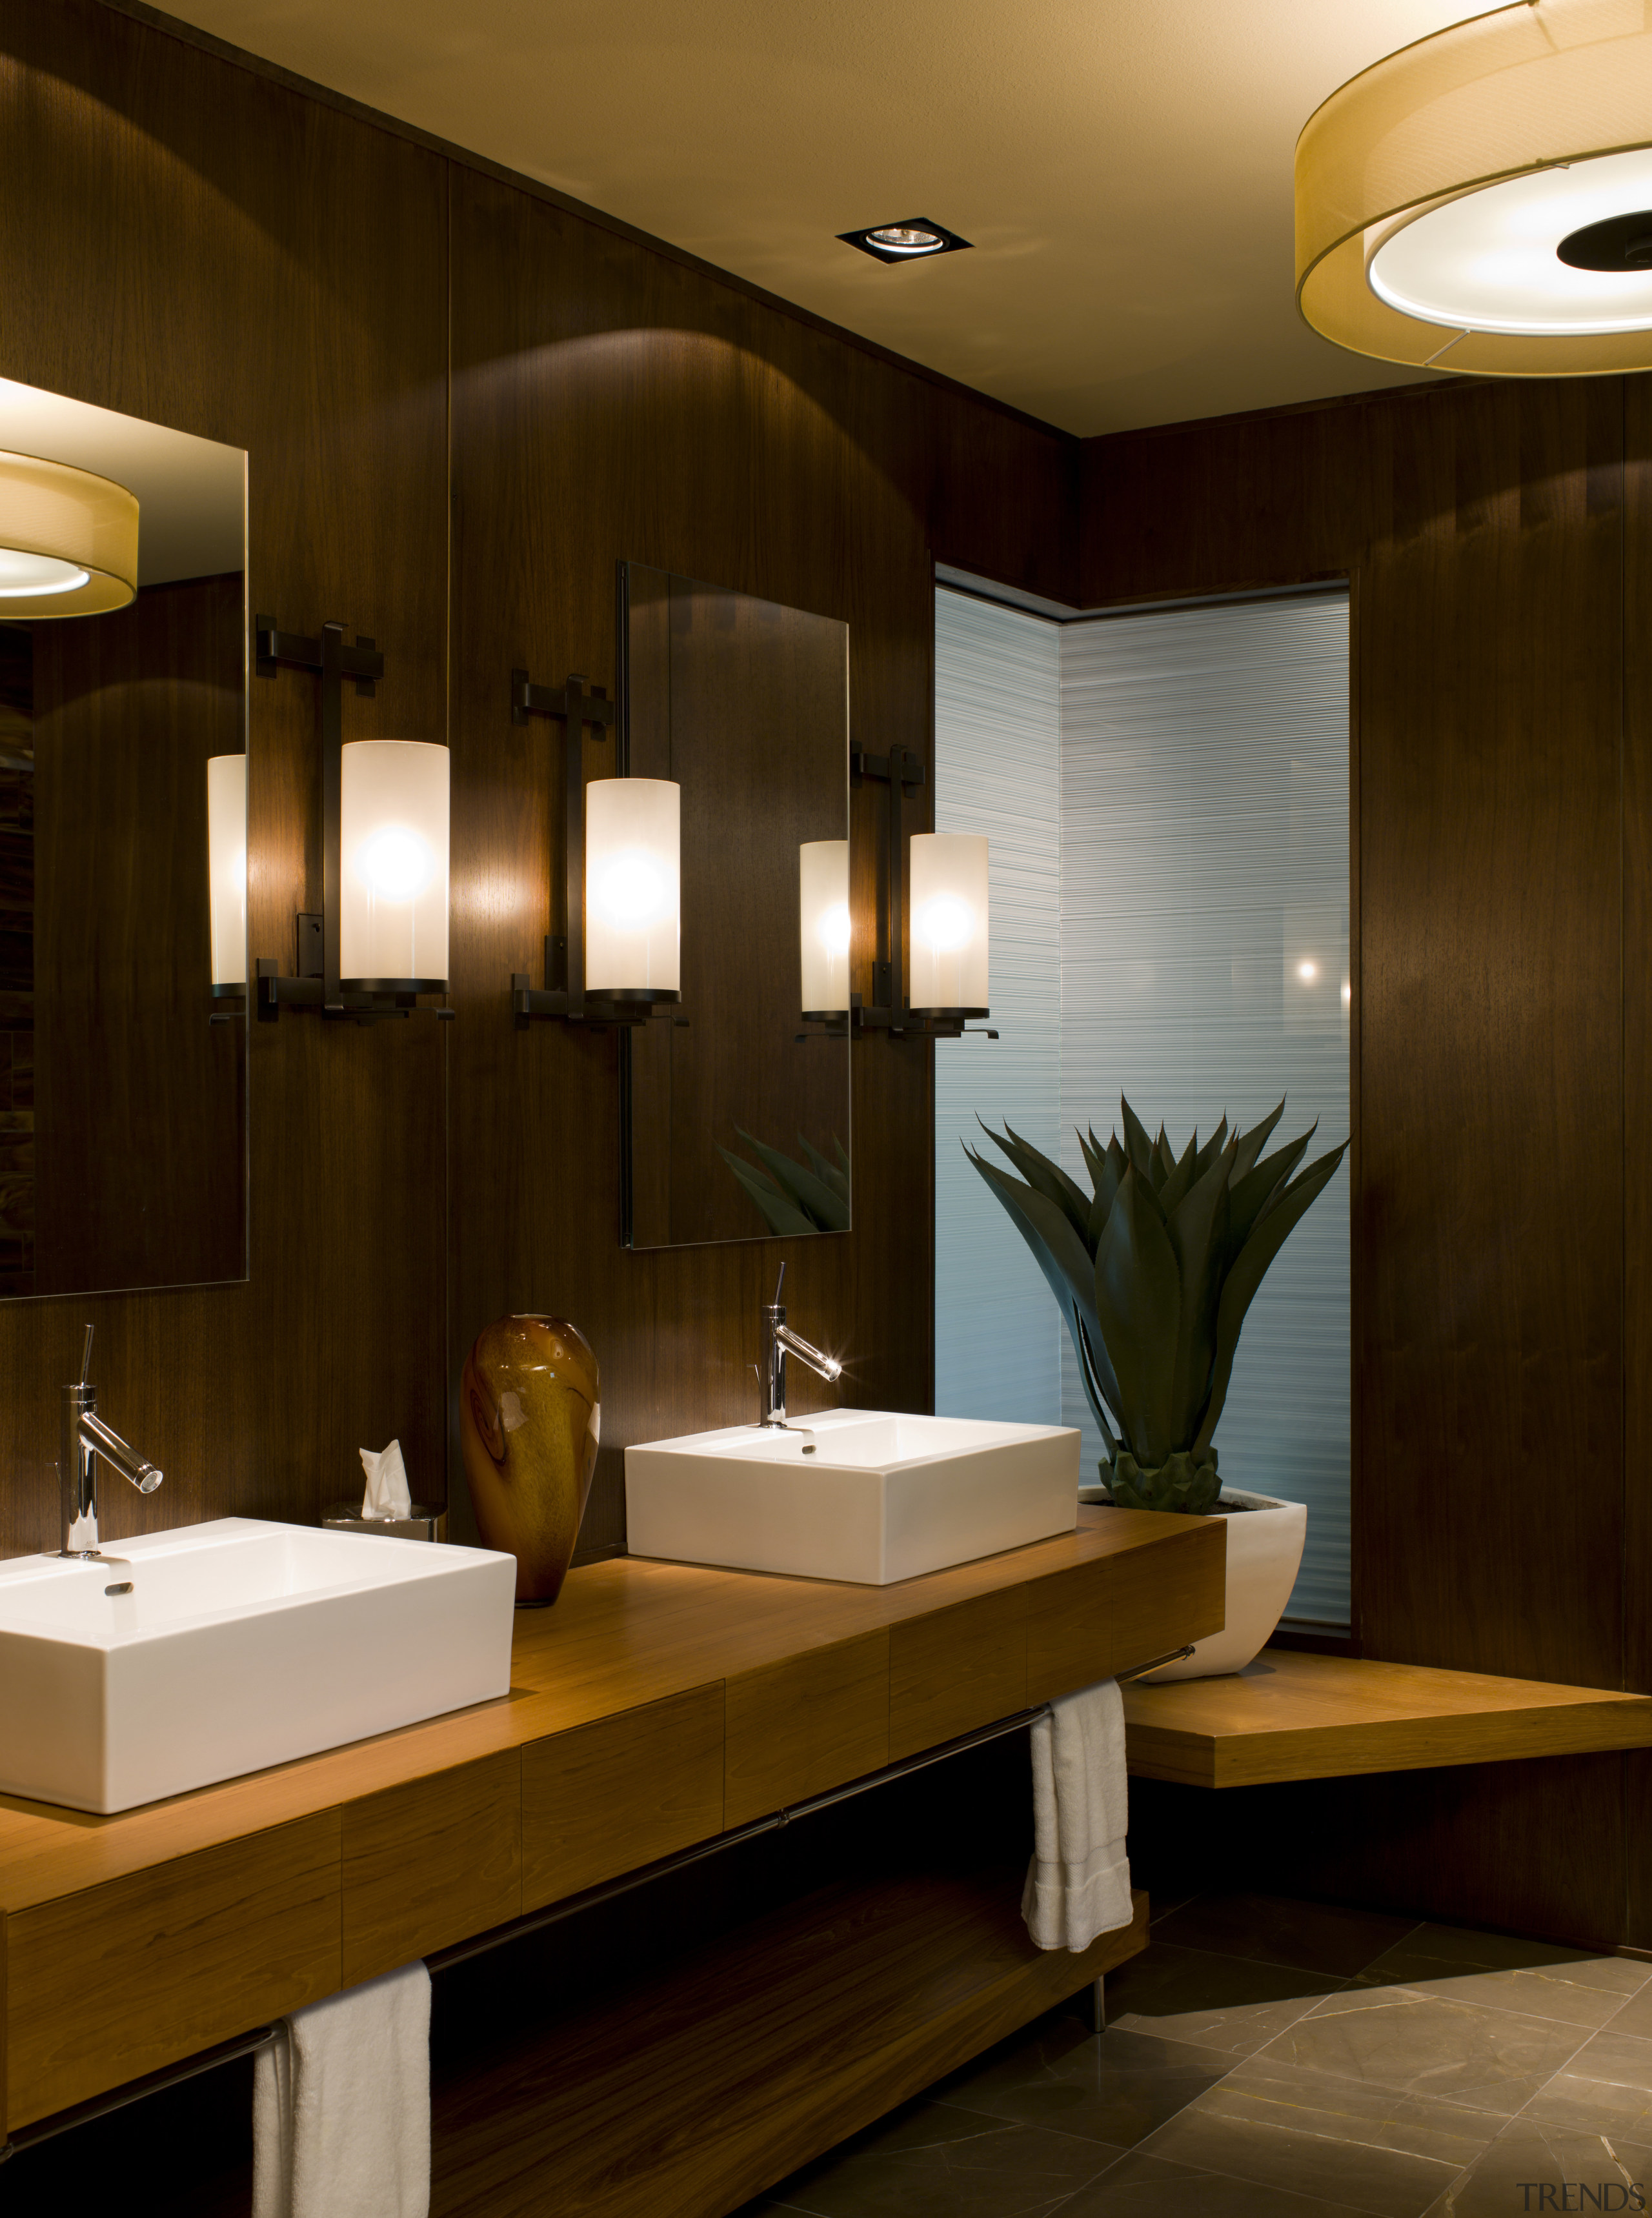 Walnut paneling in this bathroom matches the walls in the adjoining hallway. A new corner window allows borrowed light to travel in both directions.